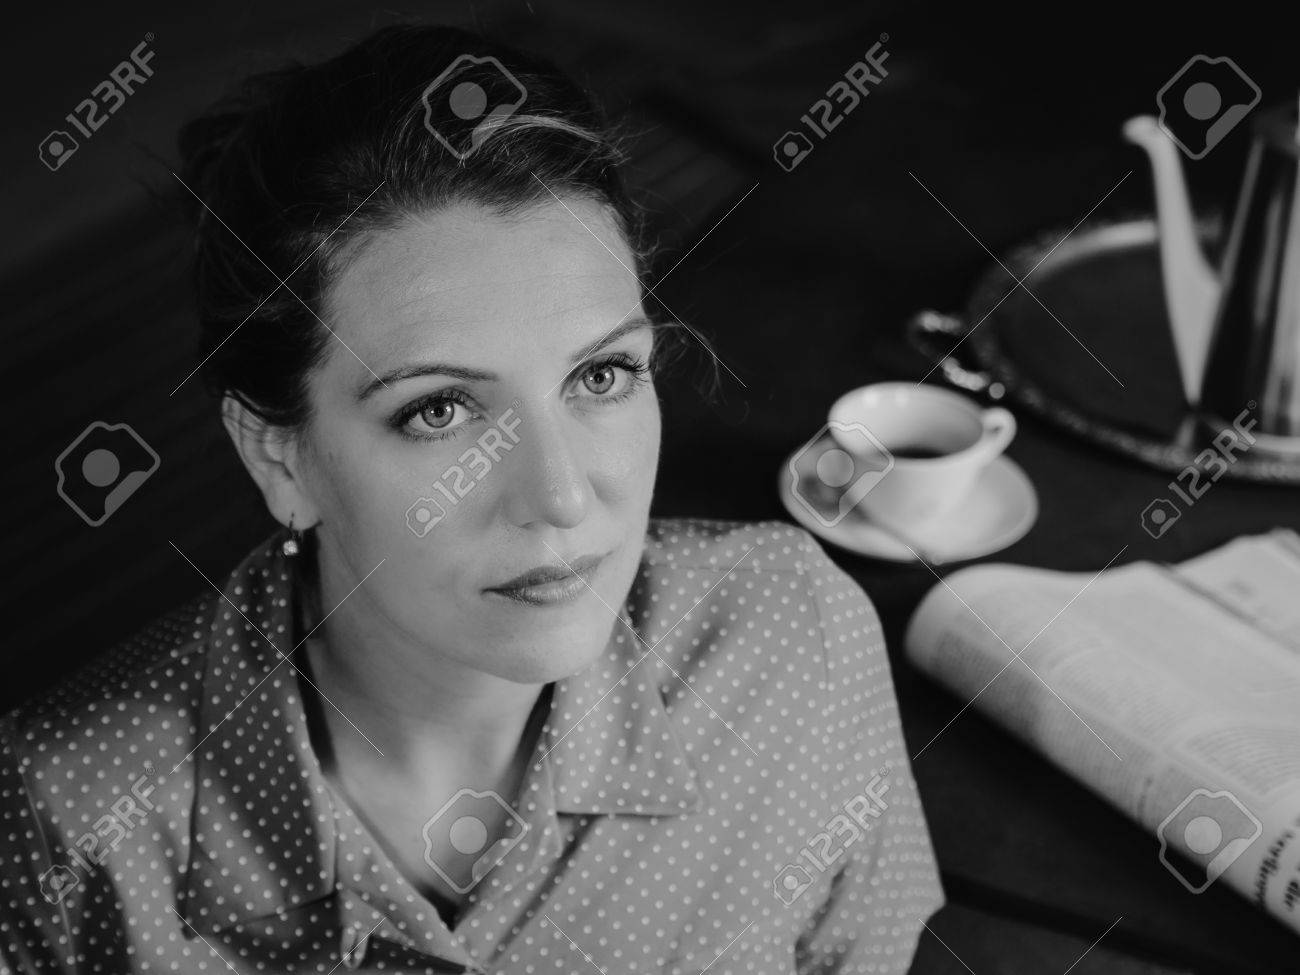 Stock photo vintage black and white portrait of a serious woman at tea time looking to the top retro style